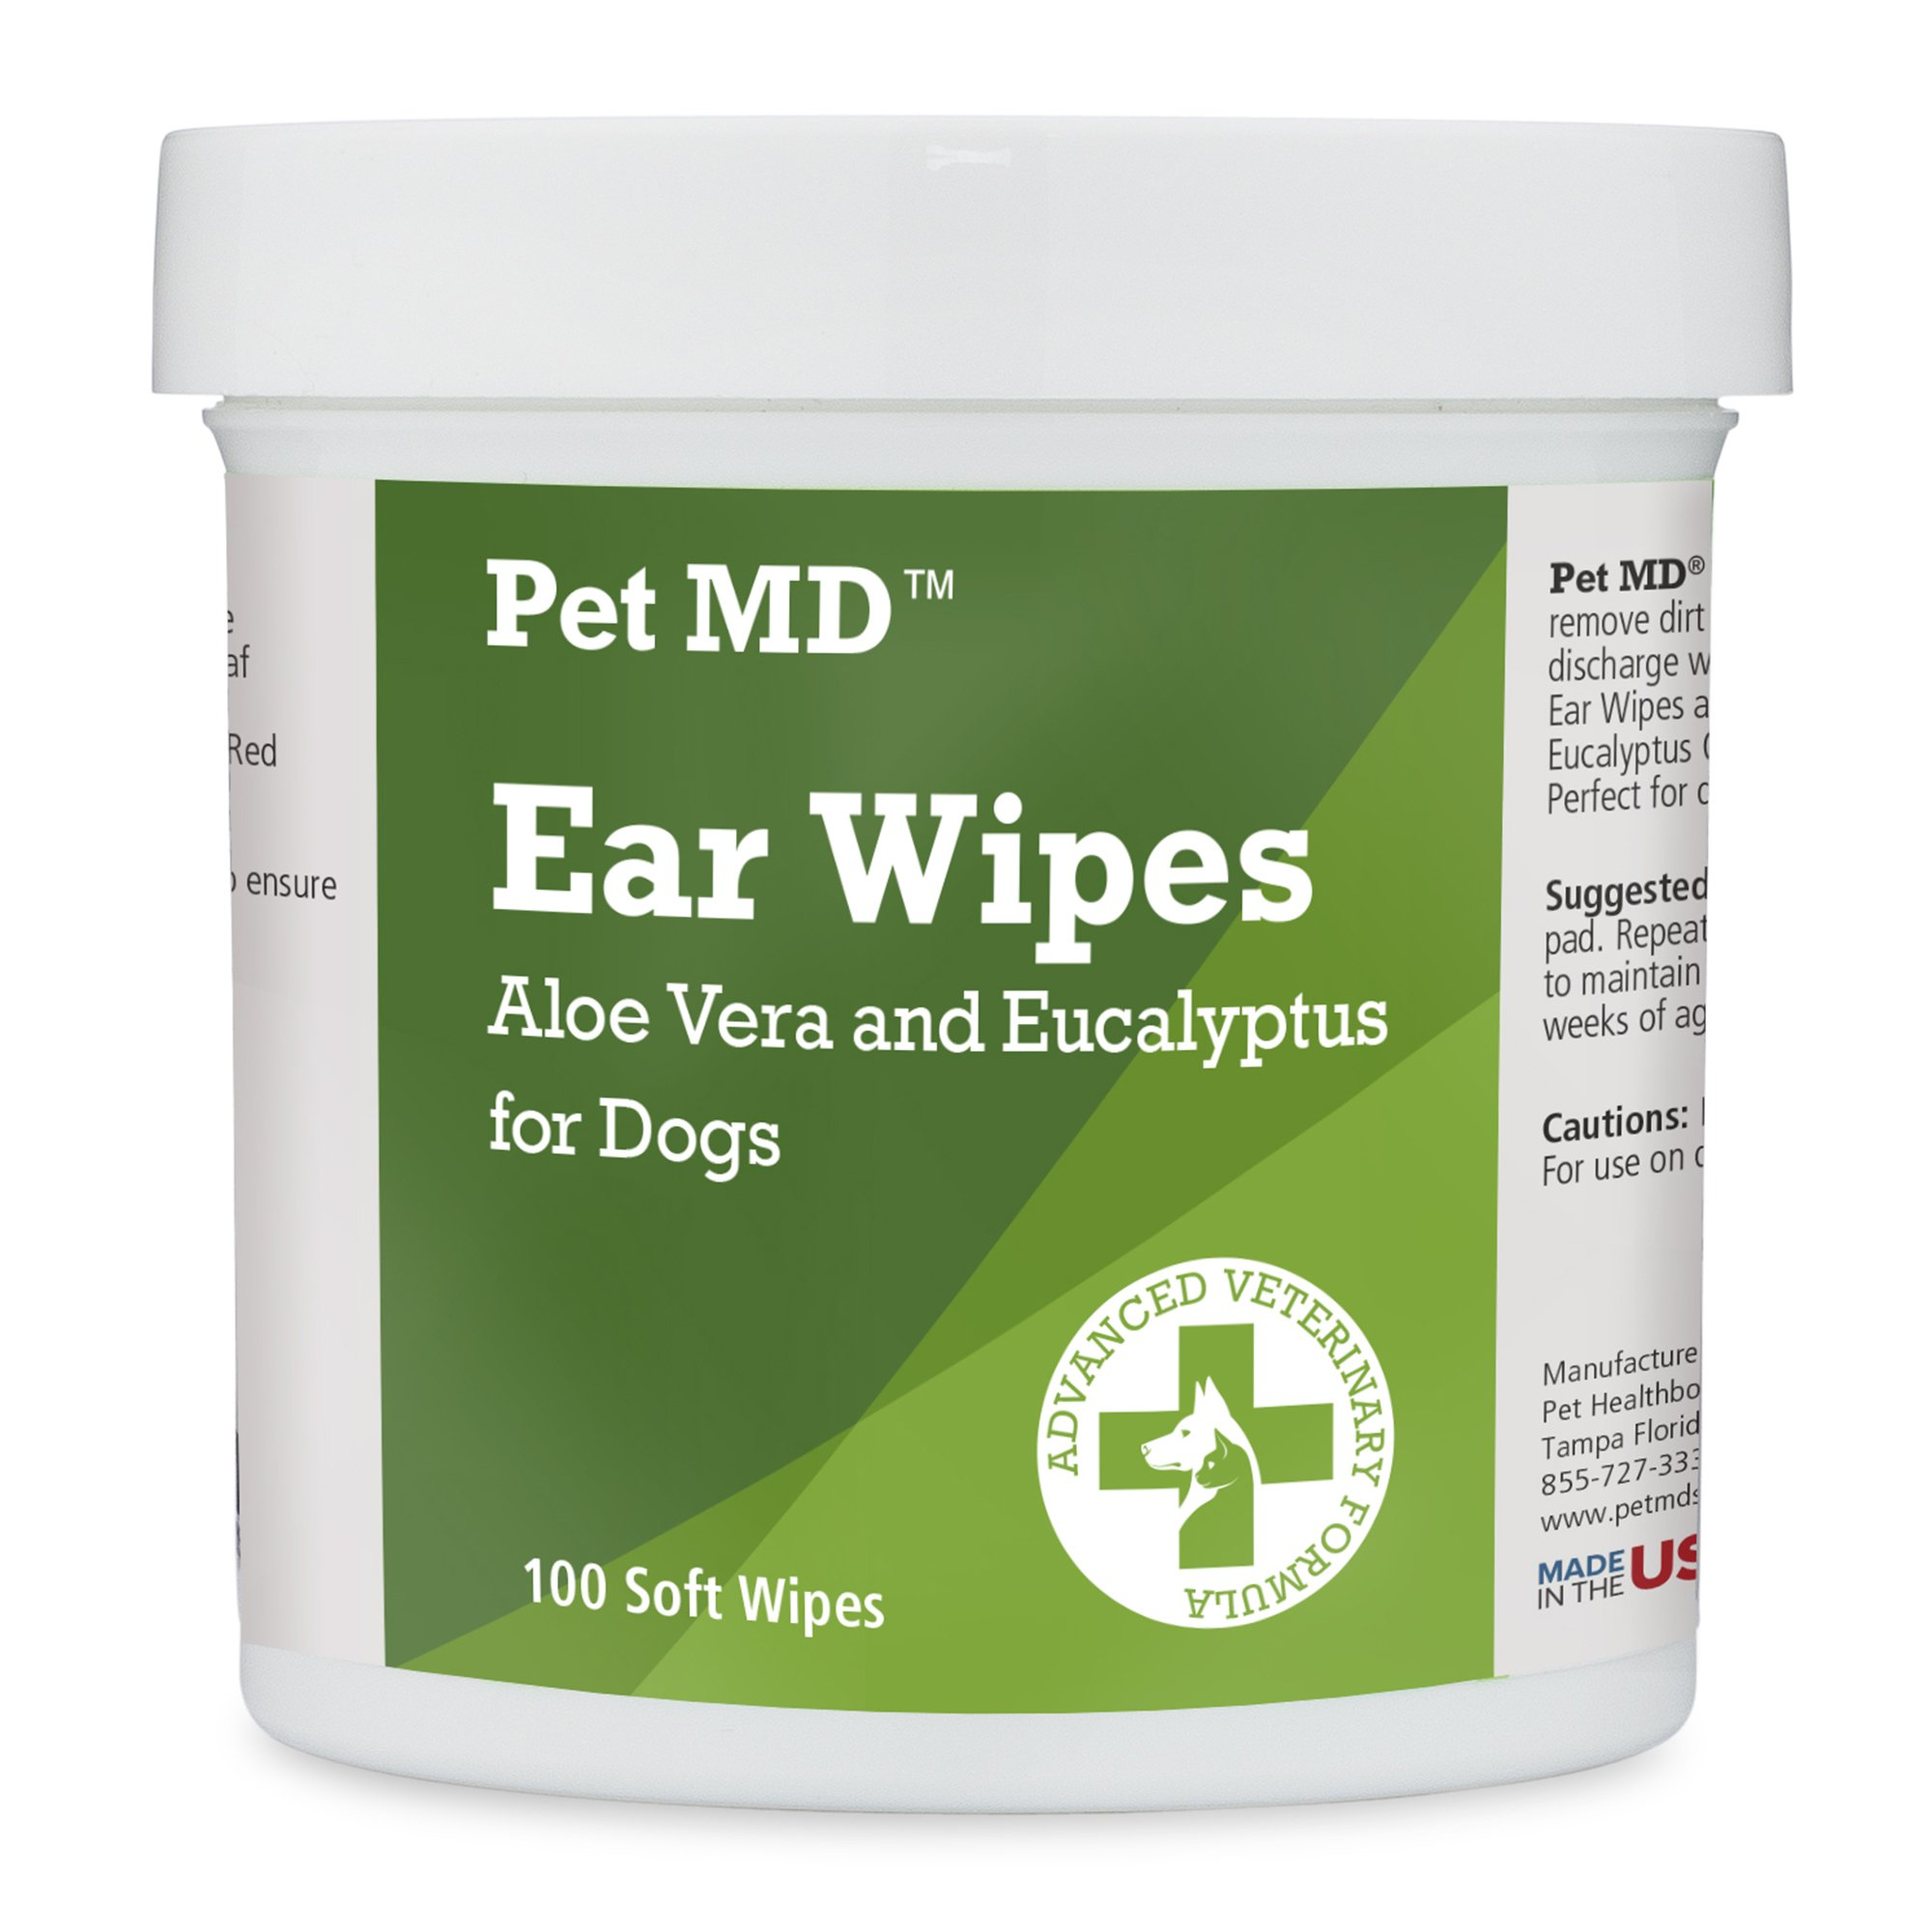 Pet MD - Dog Ear Cleaner Wipes - Otic Cleanser for Dogs to Stop Itching, Yeast and Mites with Aloe and Eucalyptus - 100 Count by Pet MD